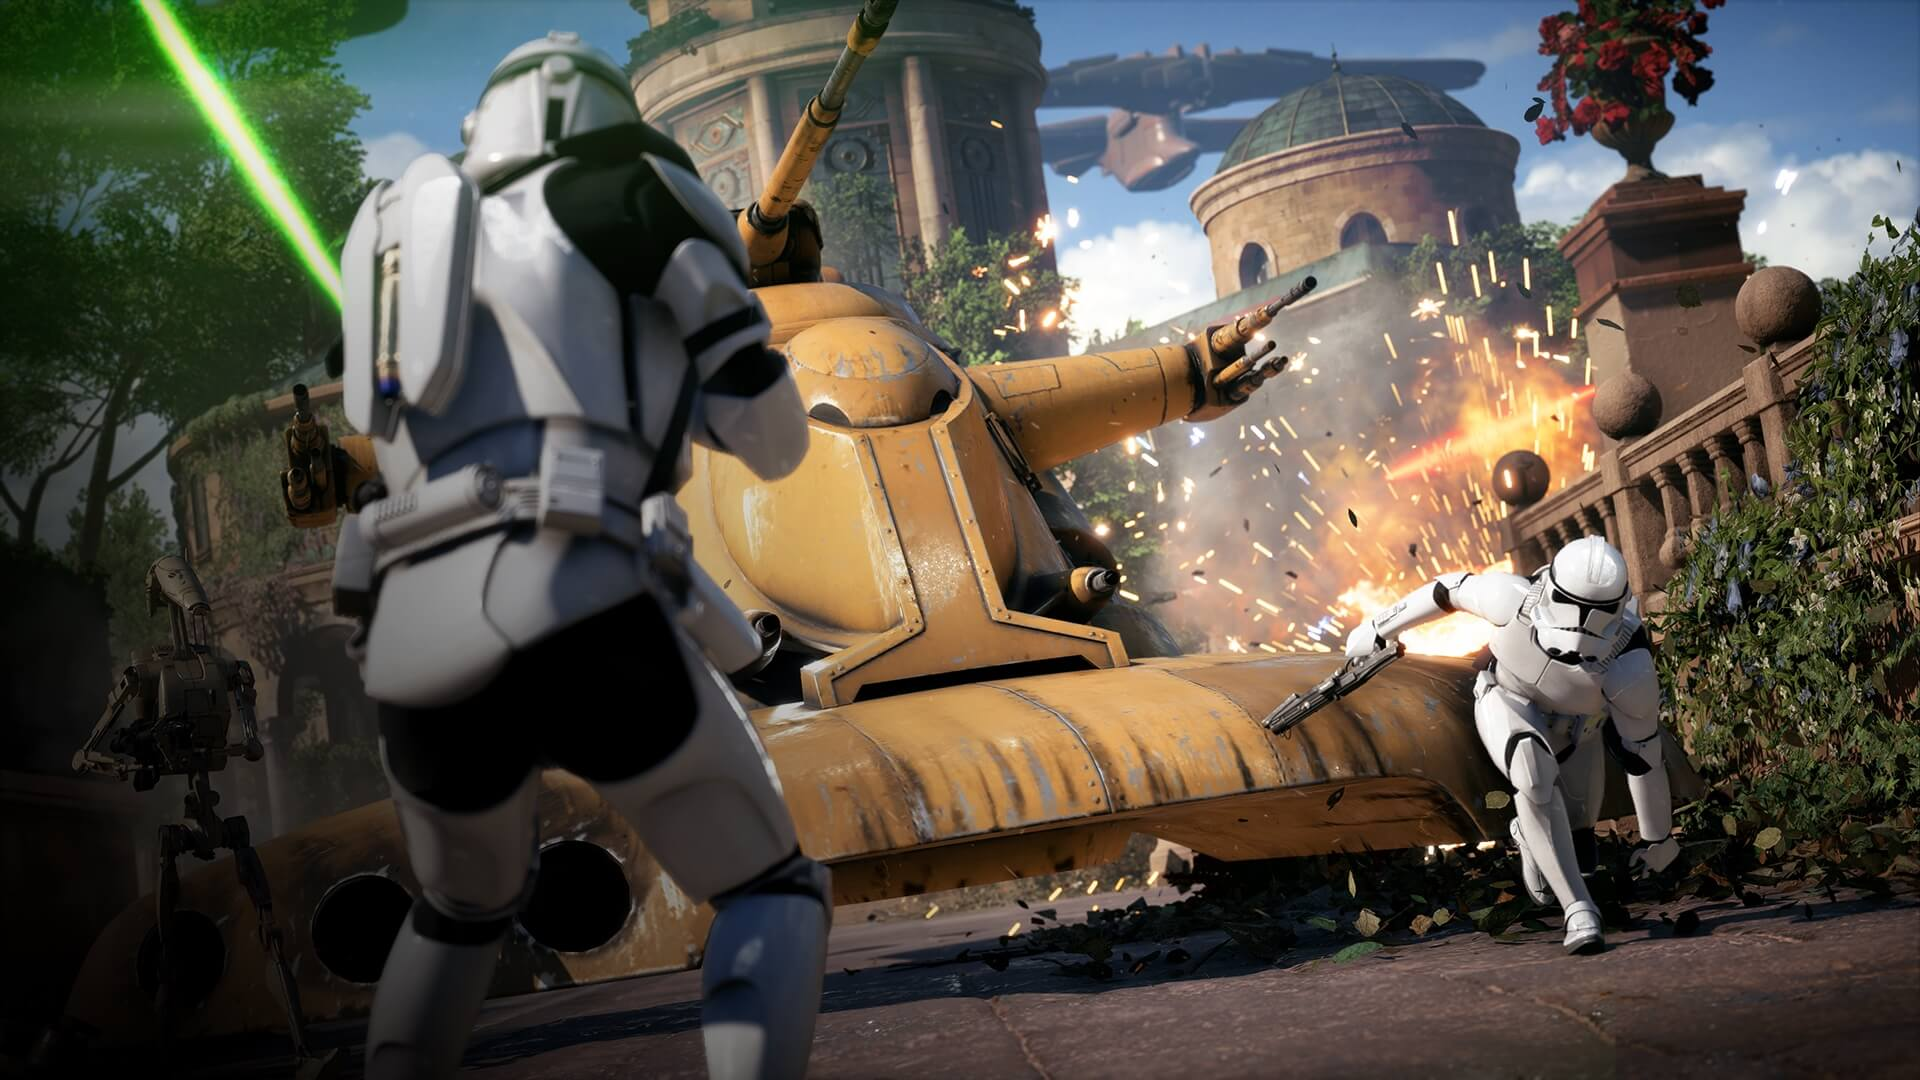 """Star Wars Battlefront II"": Don't Give in to the Hate"